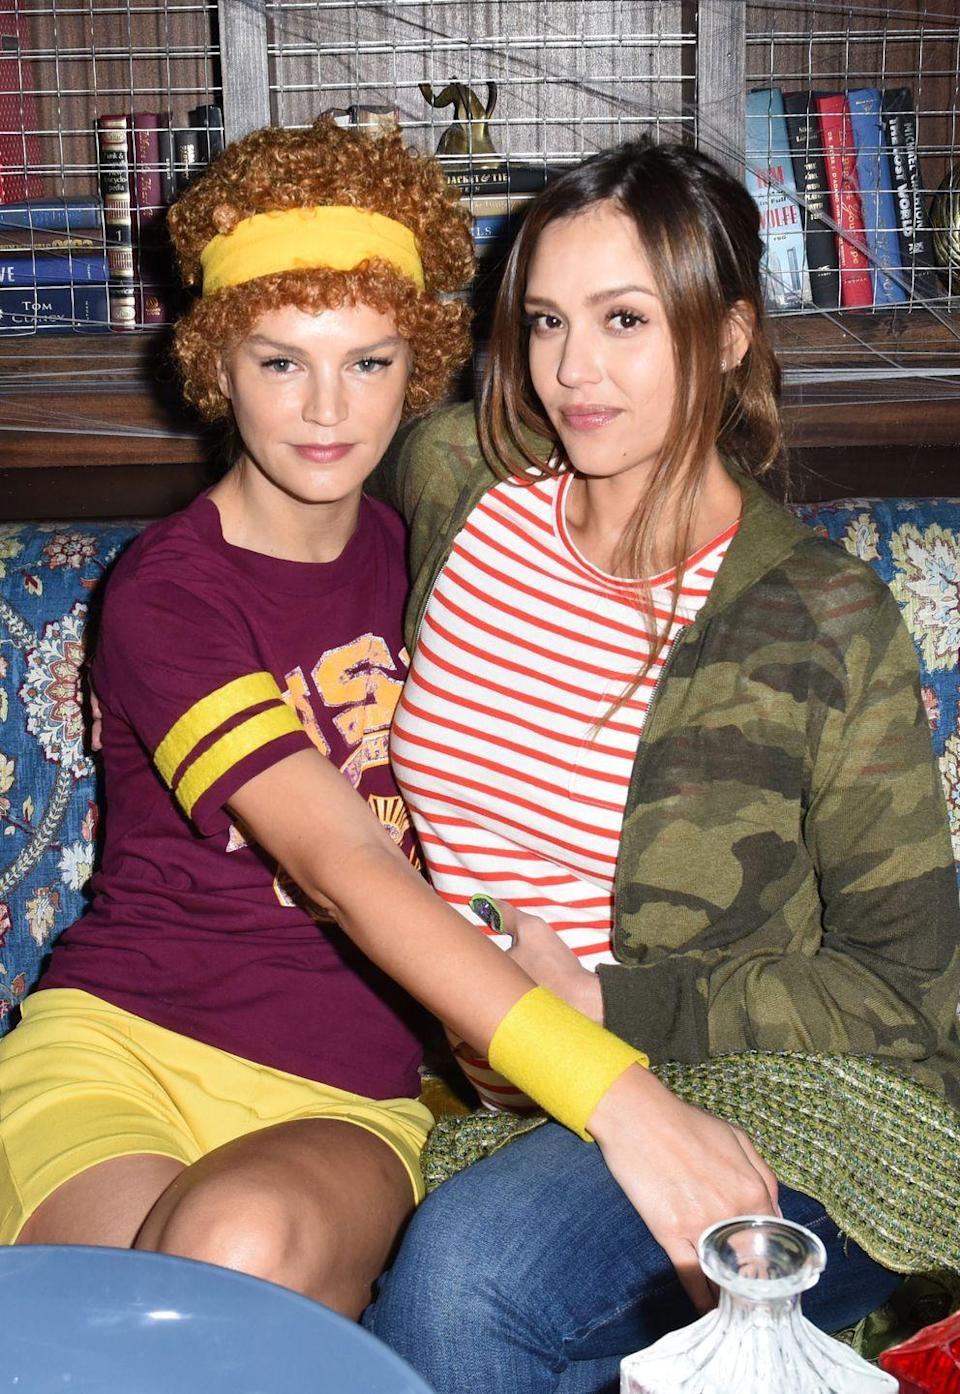 """<p>As Paulie Bleeker and Juno from the film of the same name. For more best friend Halloween costume ideas, <a href=""""https://www.elle.com/uk/fashion/what-to-wear/news/g31166/17-of-the-best-bff-halloween-costumes-best-friends/"""" rel=""""nofollow noopener"""" target=""""_blank"""" data-ylk=""""slk:we've got you covered."""" class=""""link rapid-noclick-resp"""">we've got you covered.</a></p>"""